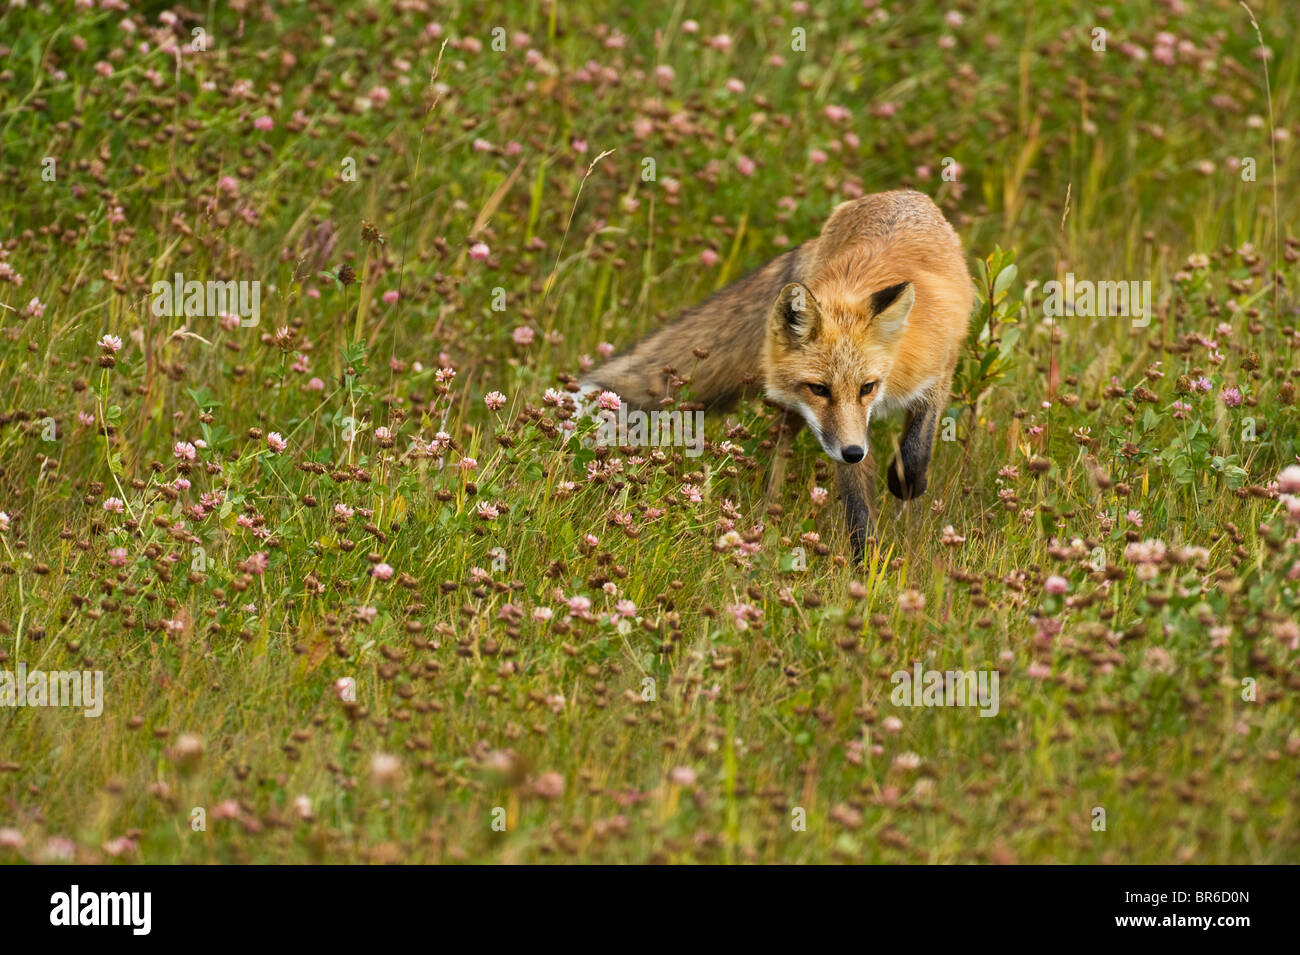 A red fox stalking through a wild grassy meadow looking for prey. - Stock Image